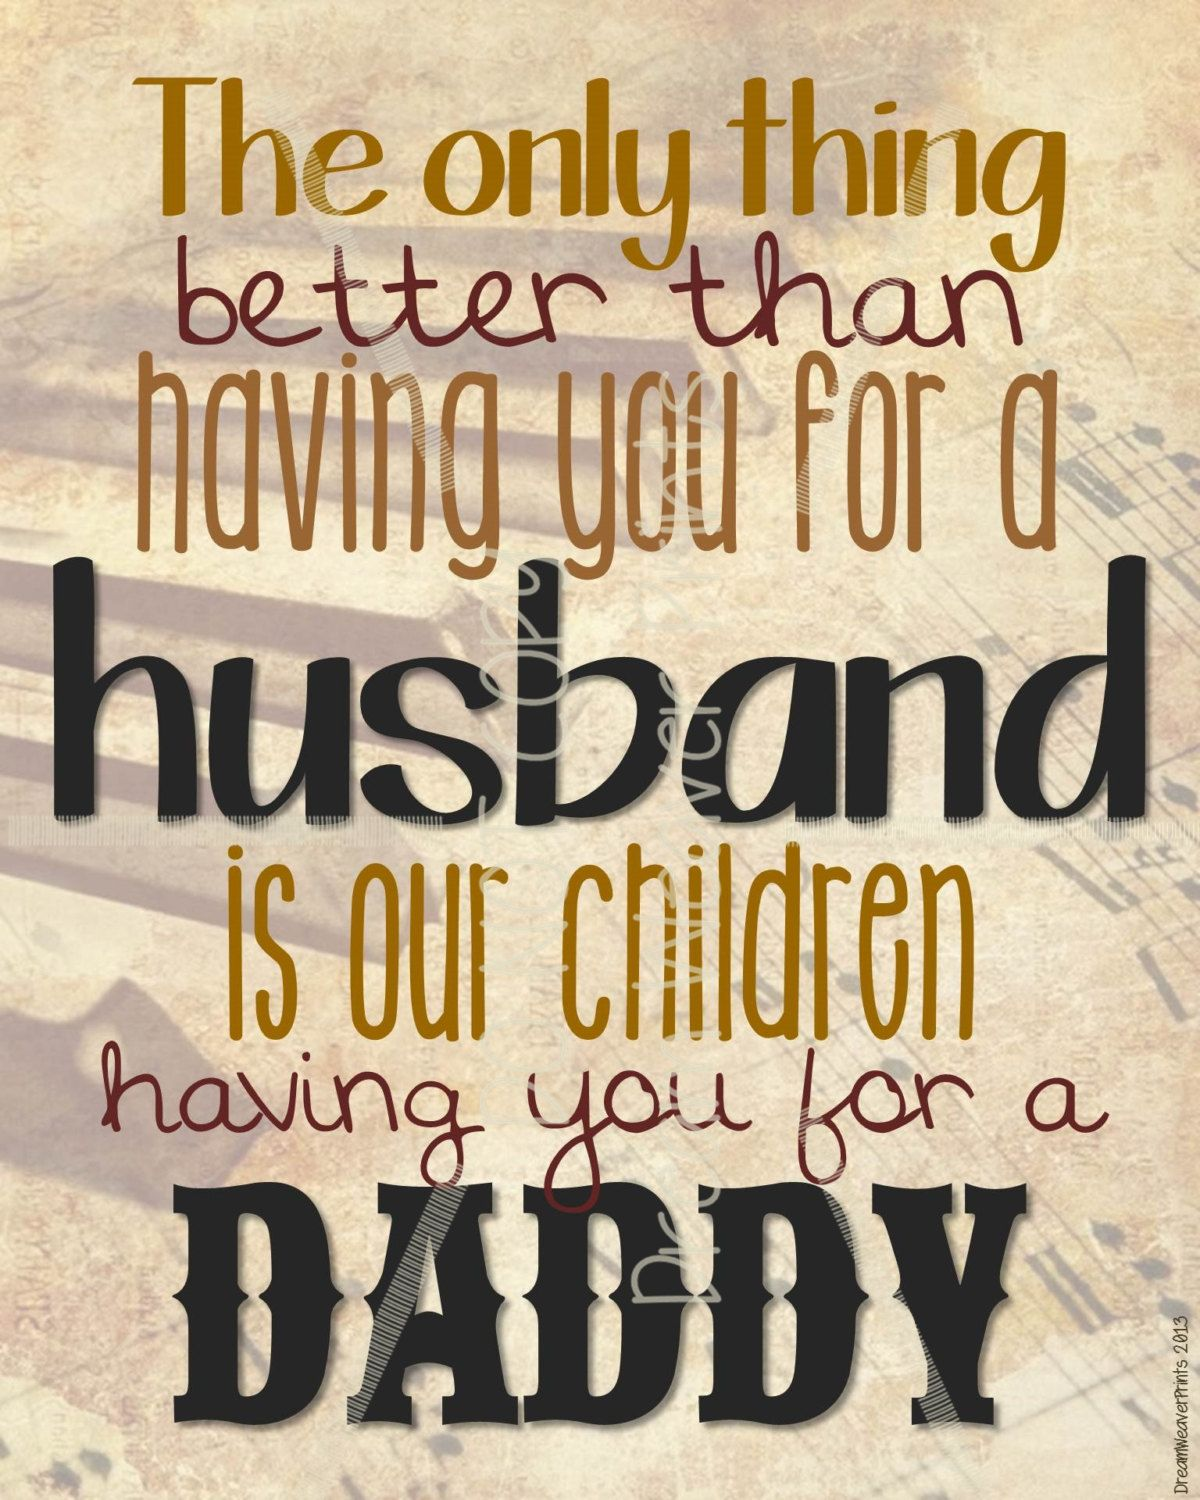 Happy Fathers Day Wishes For Husband Quotesmeme